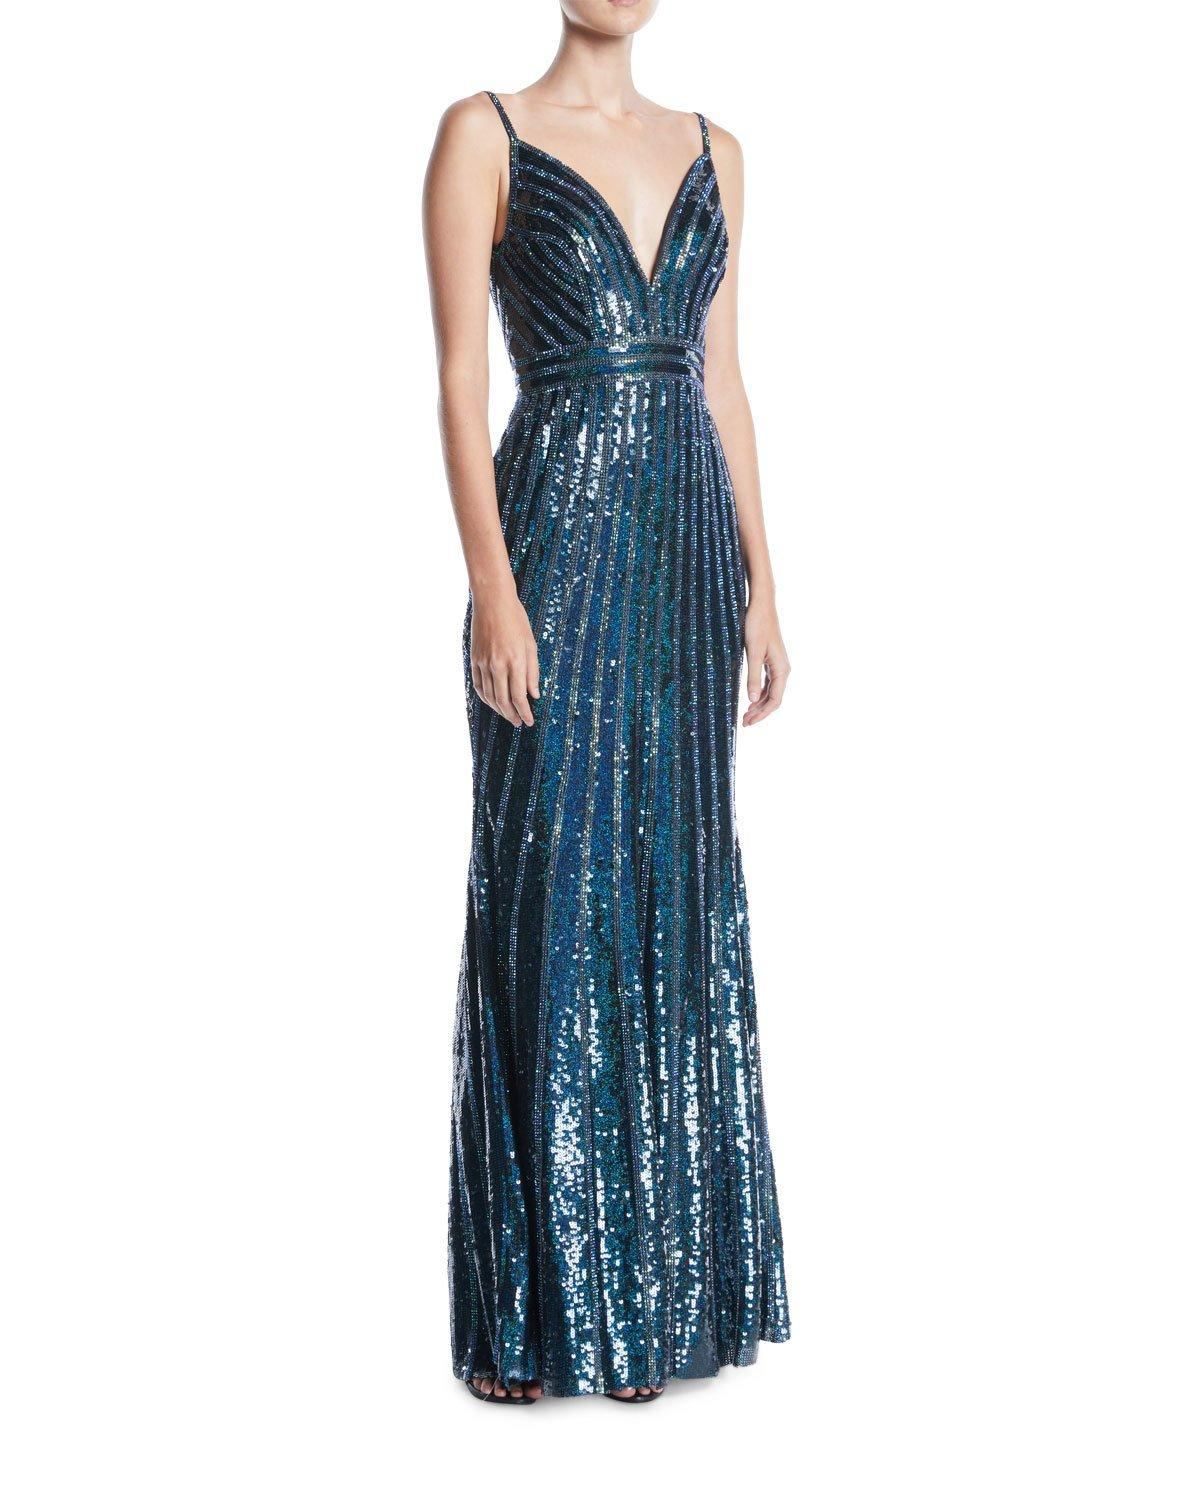 177c7a514187 Jovani V-Neck Sleeveless Striped-Sequin Slip Evening Gown In Black/Green